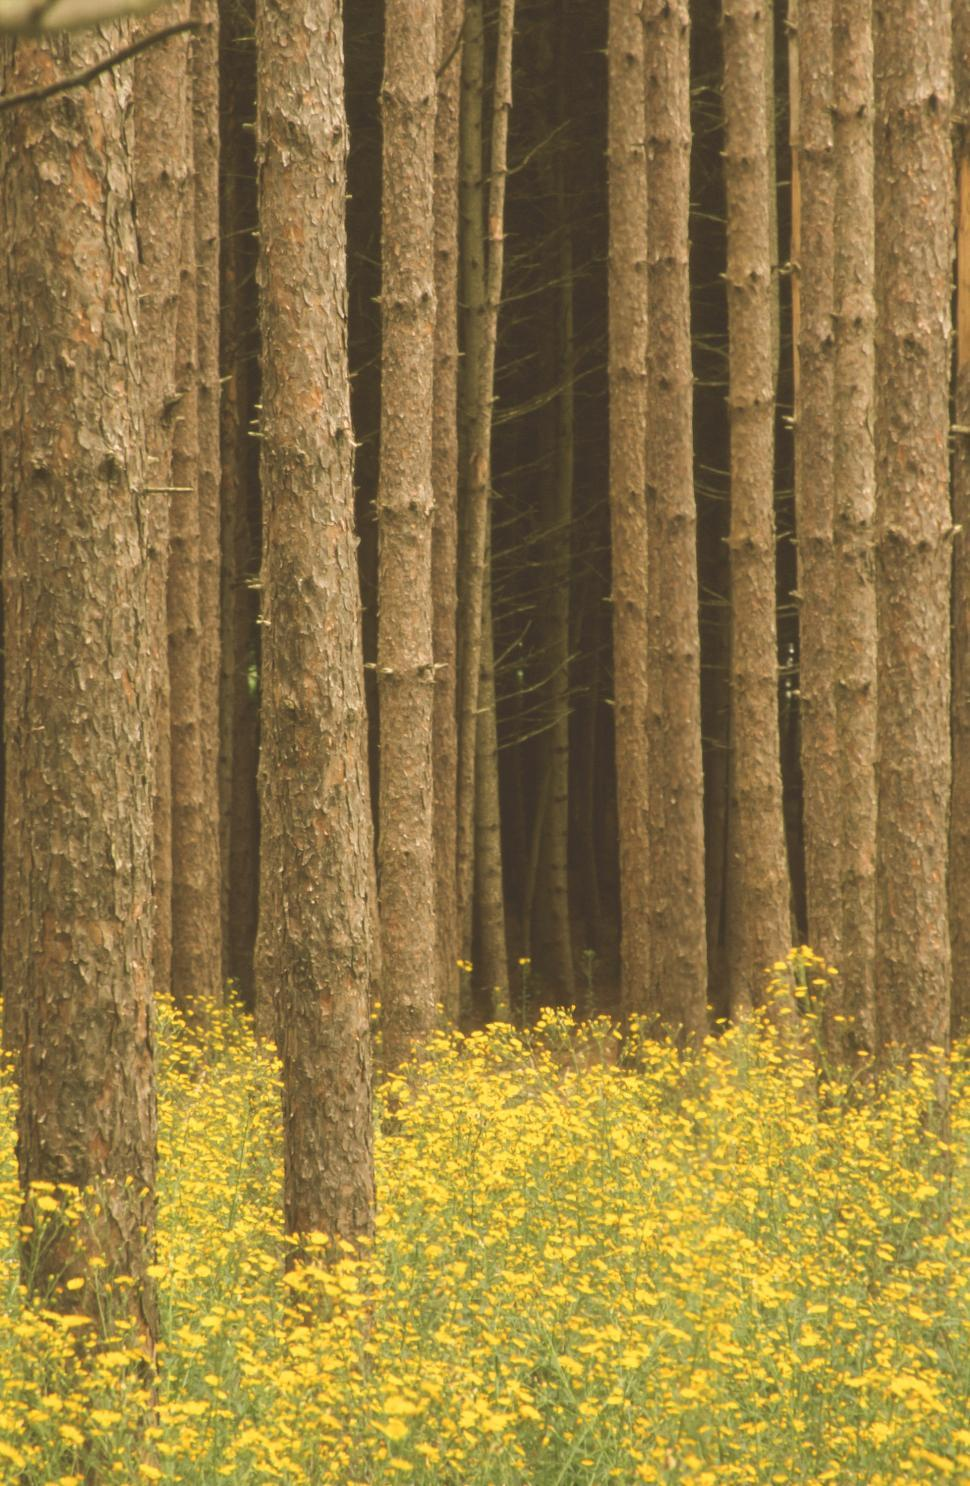 Download Free Stock HD Photo of Tree Trunks and Bulbous Buttercup Flowers Background Online